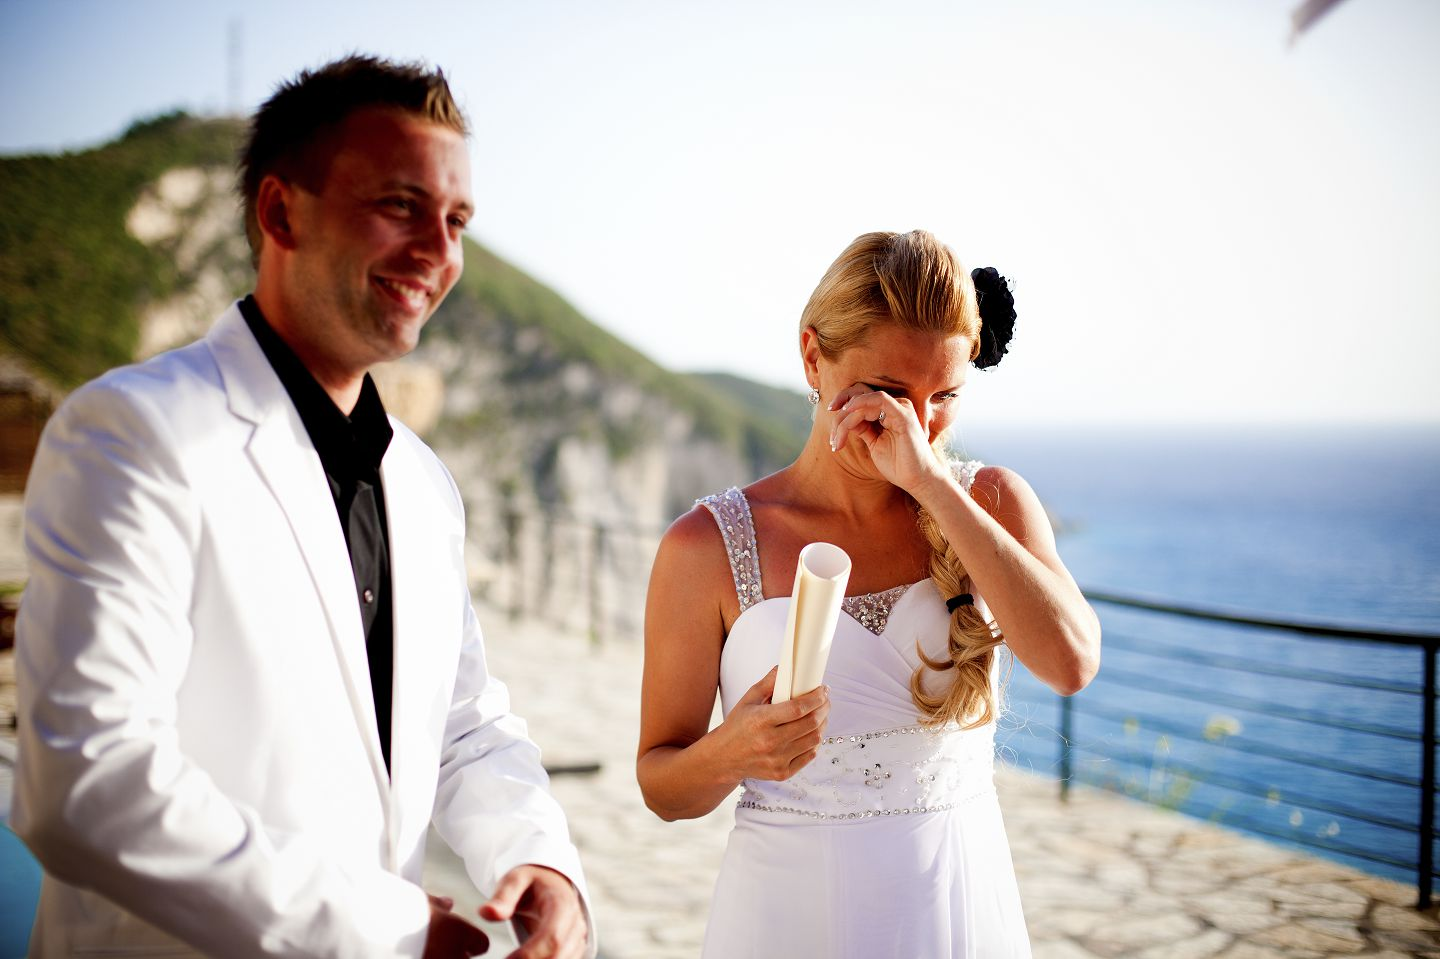 greece-lefkada-wedding-natalija-vasja-55